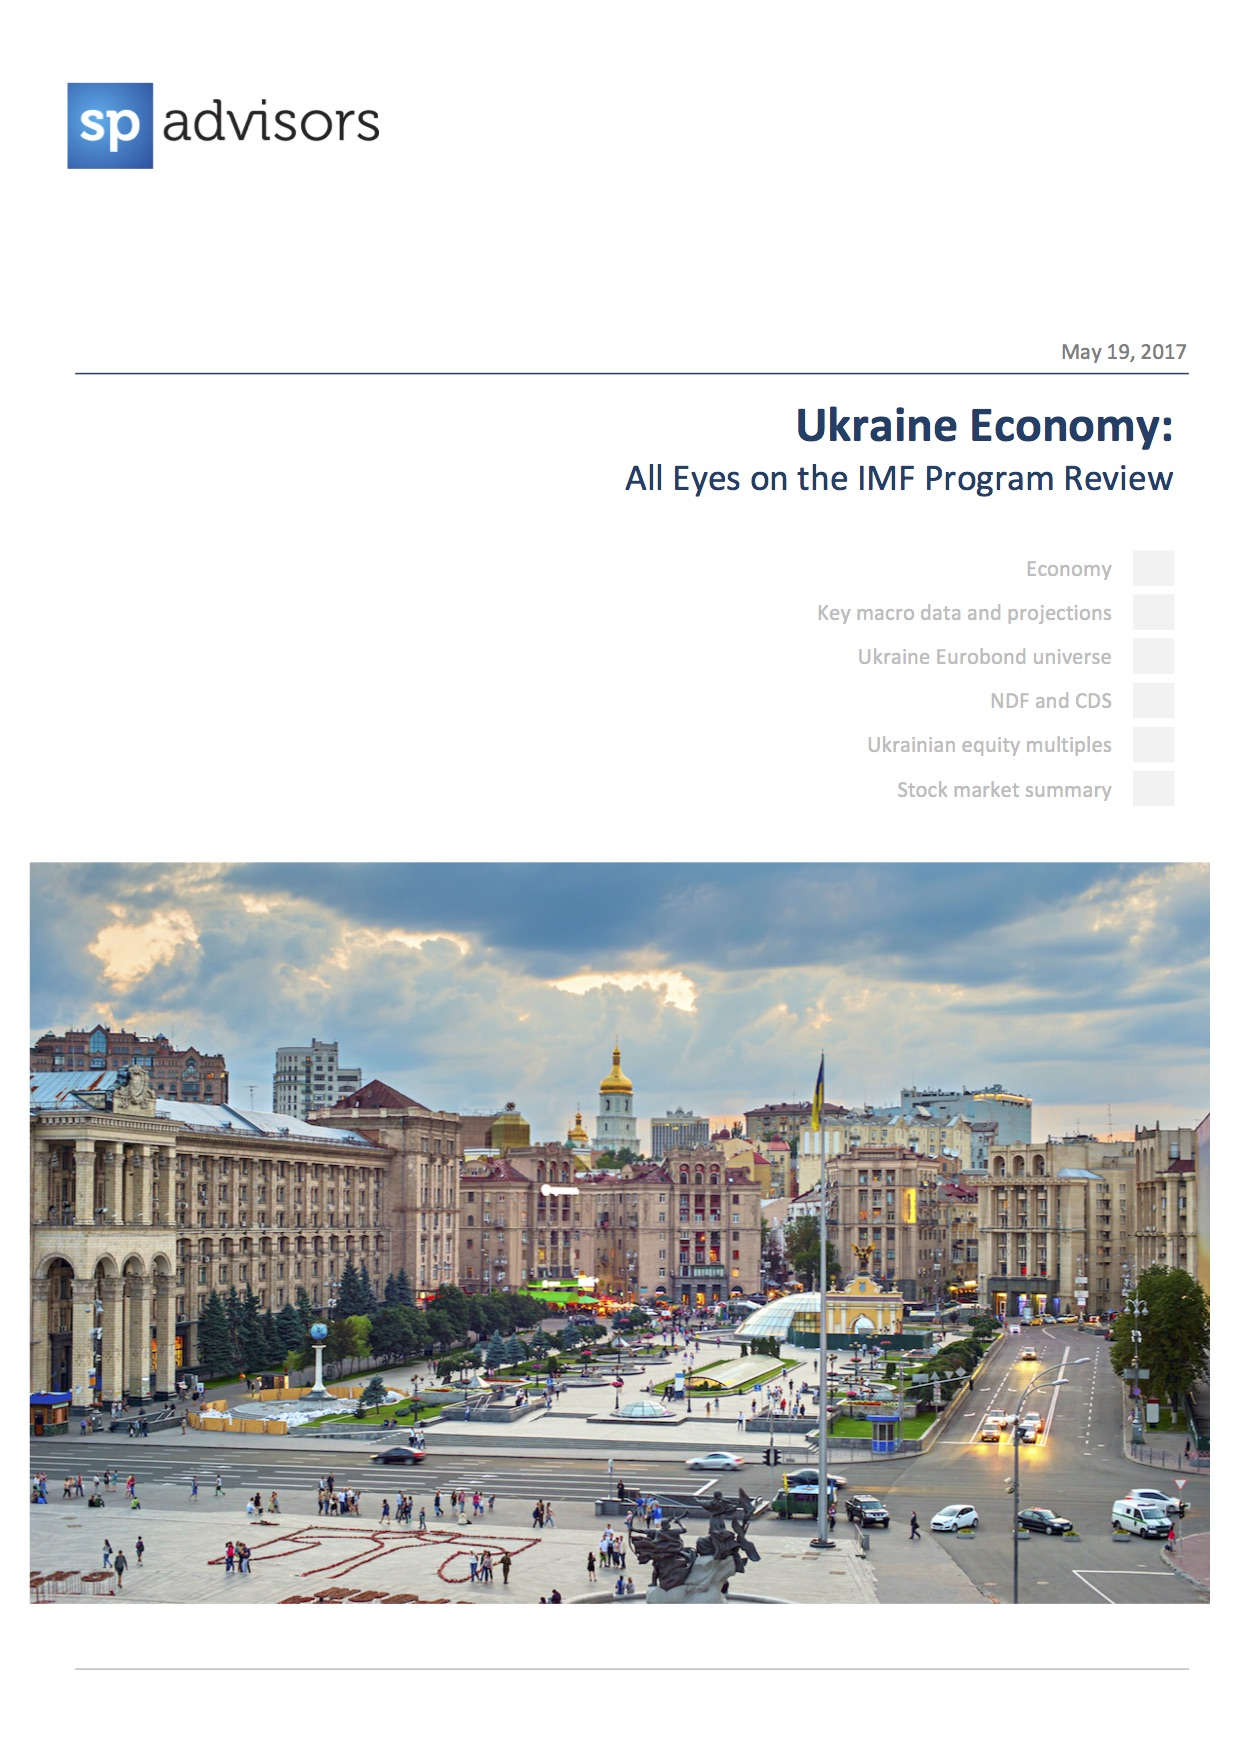 Ukraine Economy: All Eyes on the IMF Program Review. May 19, 2017